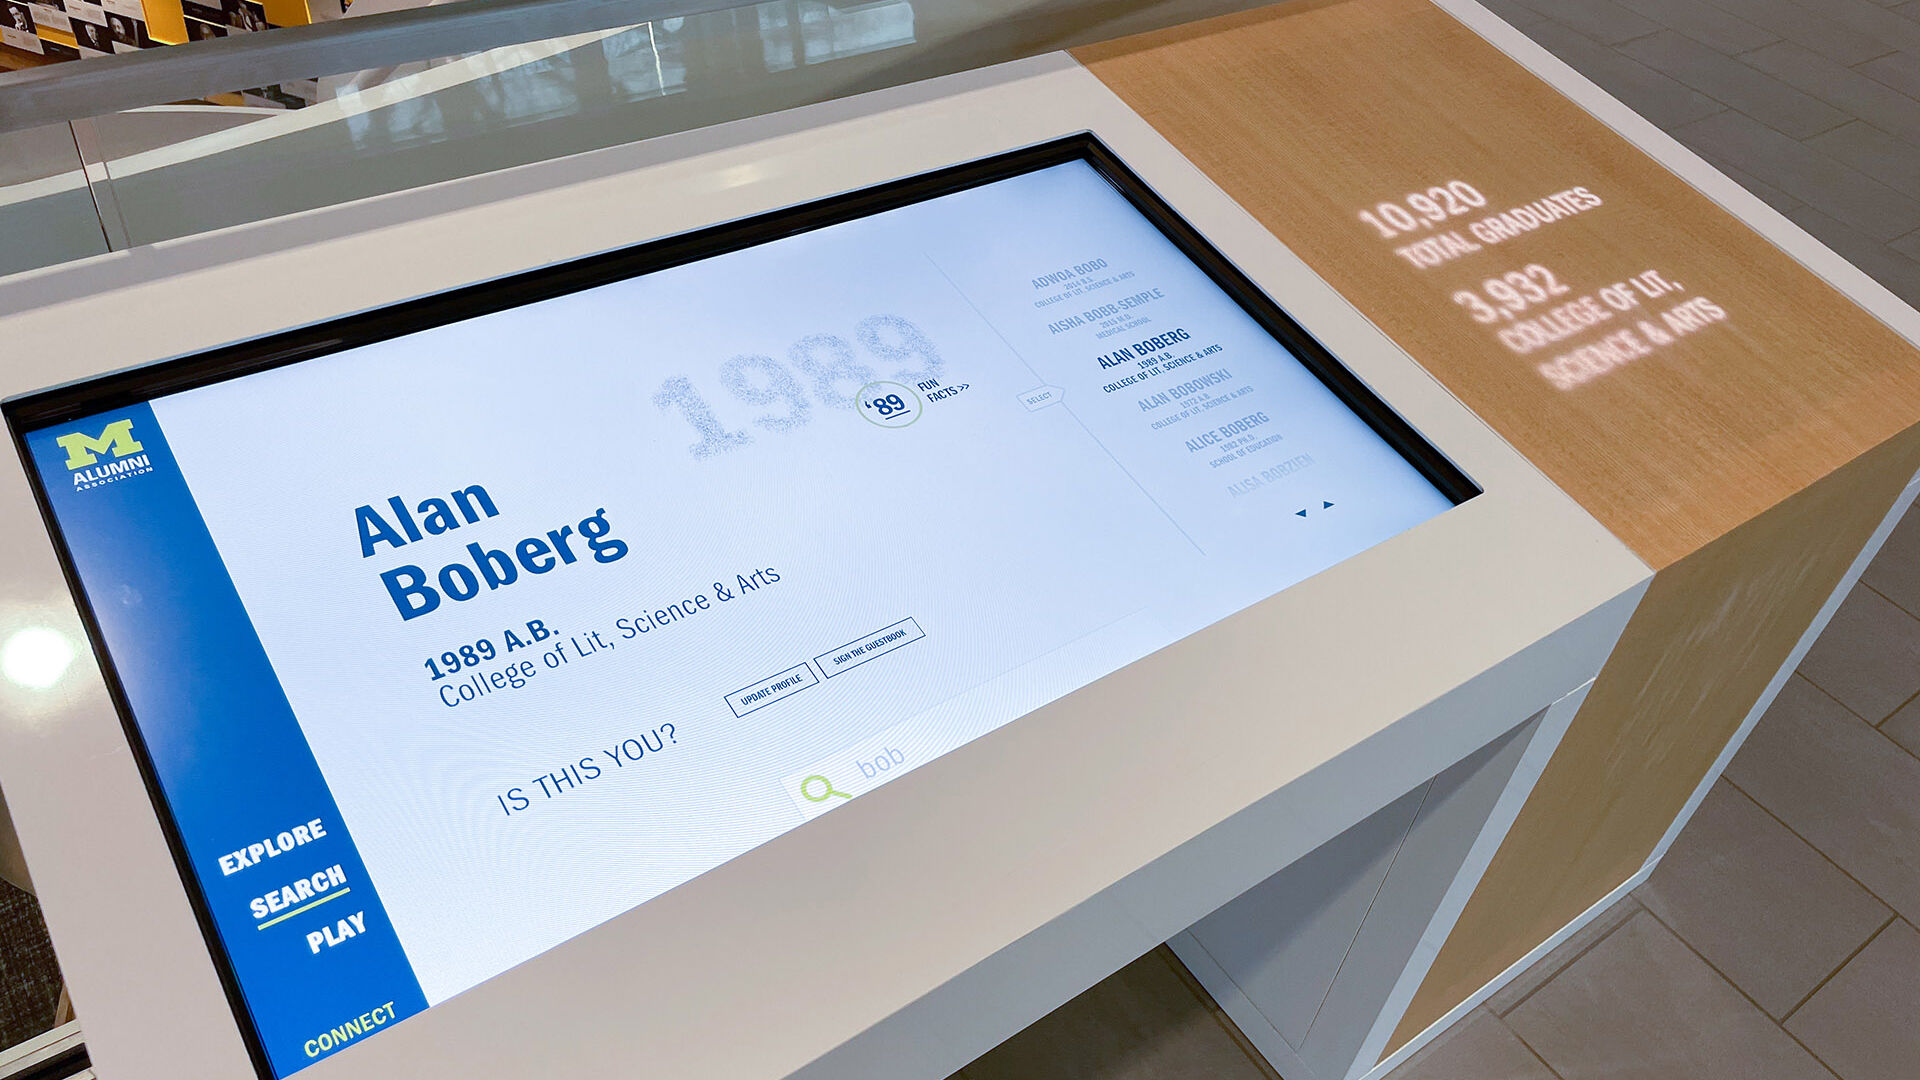 University of Michigan Alumni Center Interactive Wall and Table allow you to search the vast alumni network